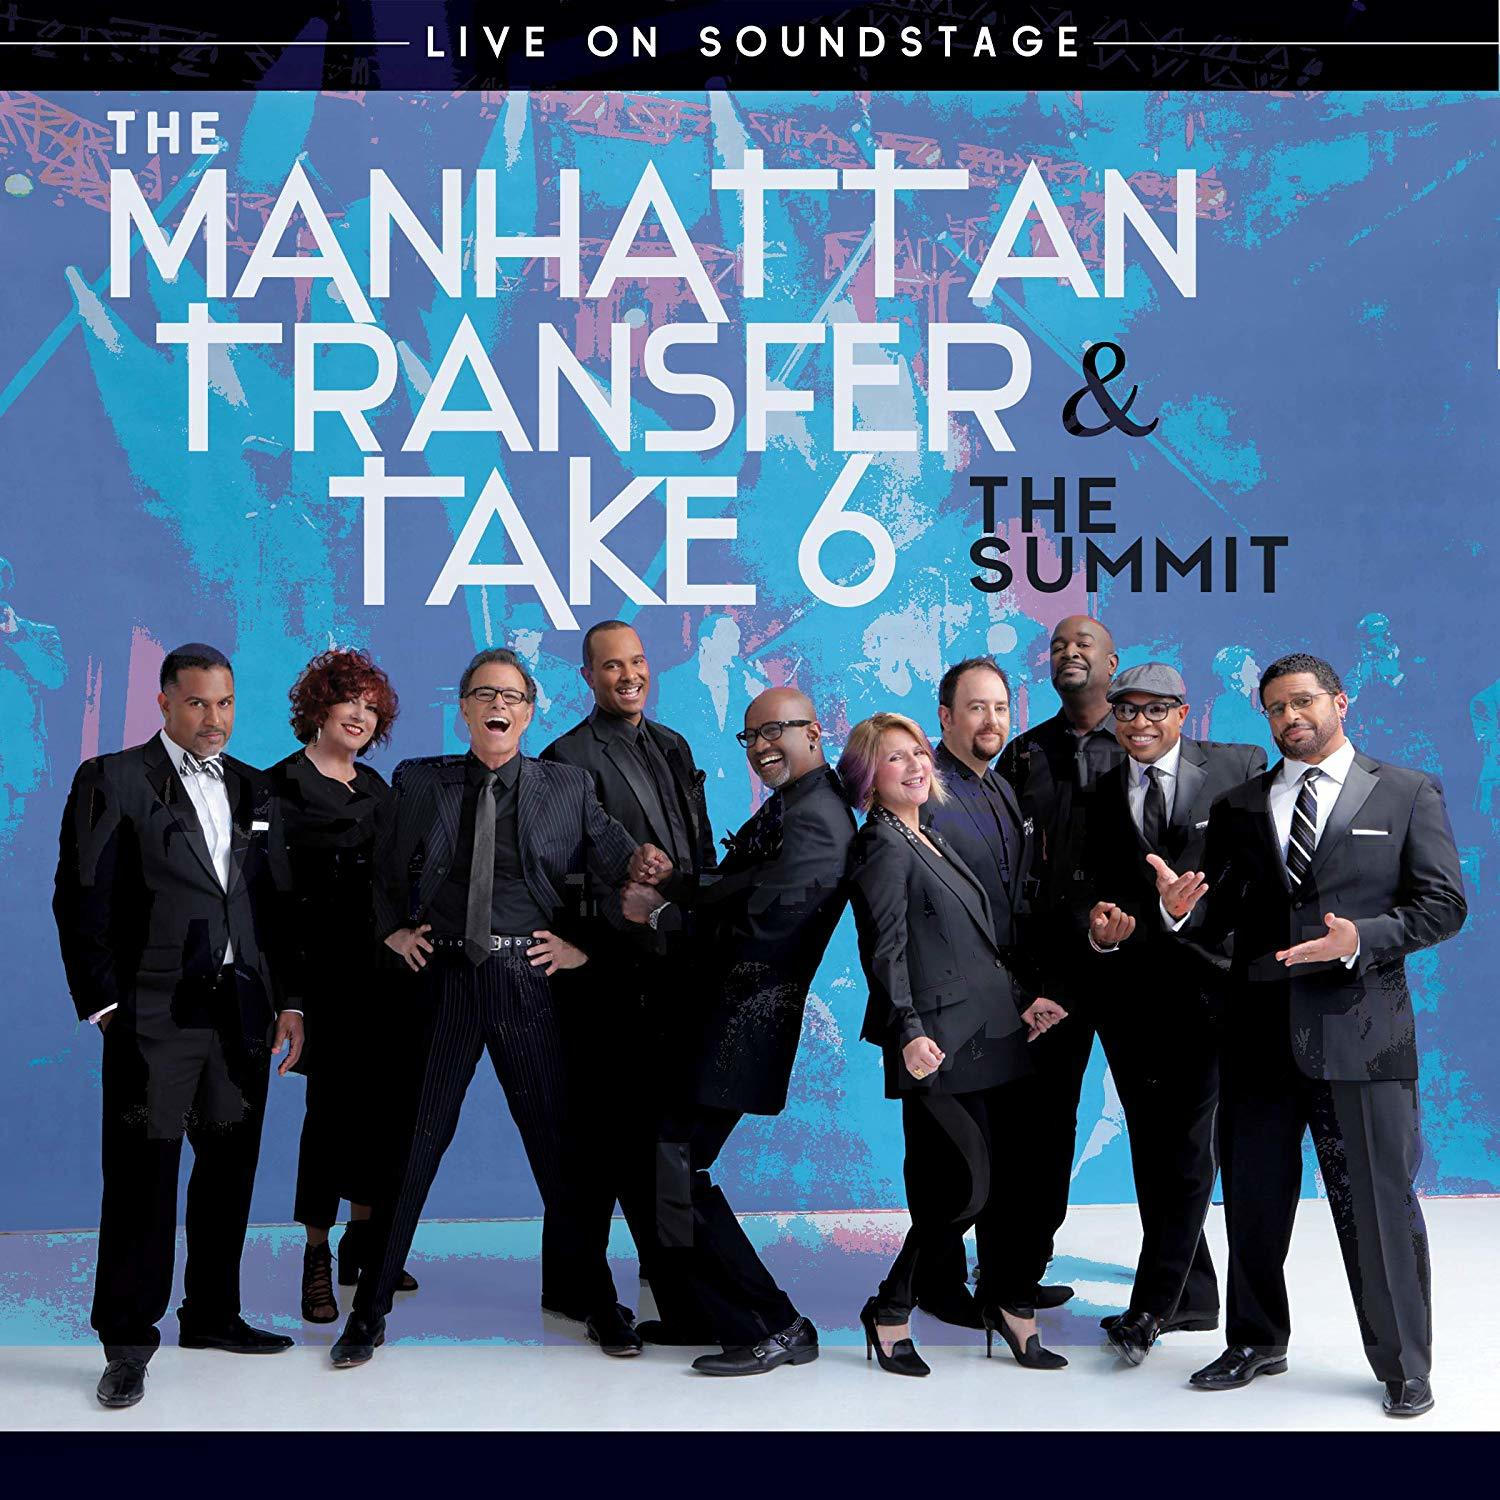 The Manhattan Transfer and Take 6: The Summit - Live on